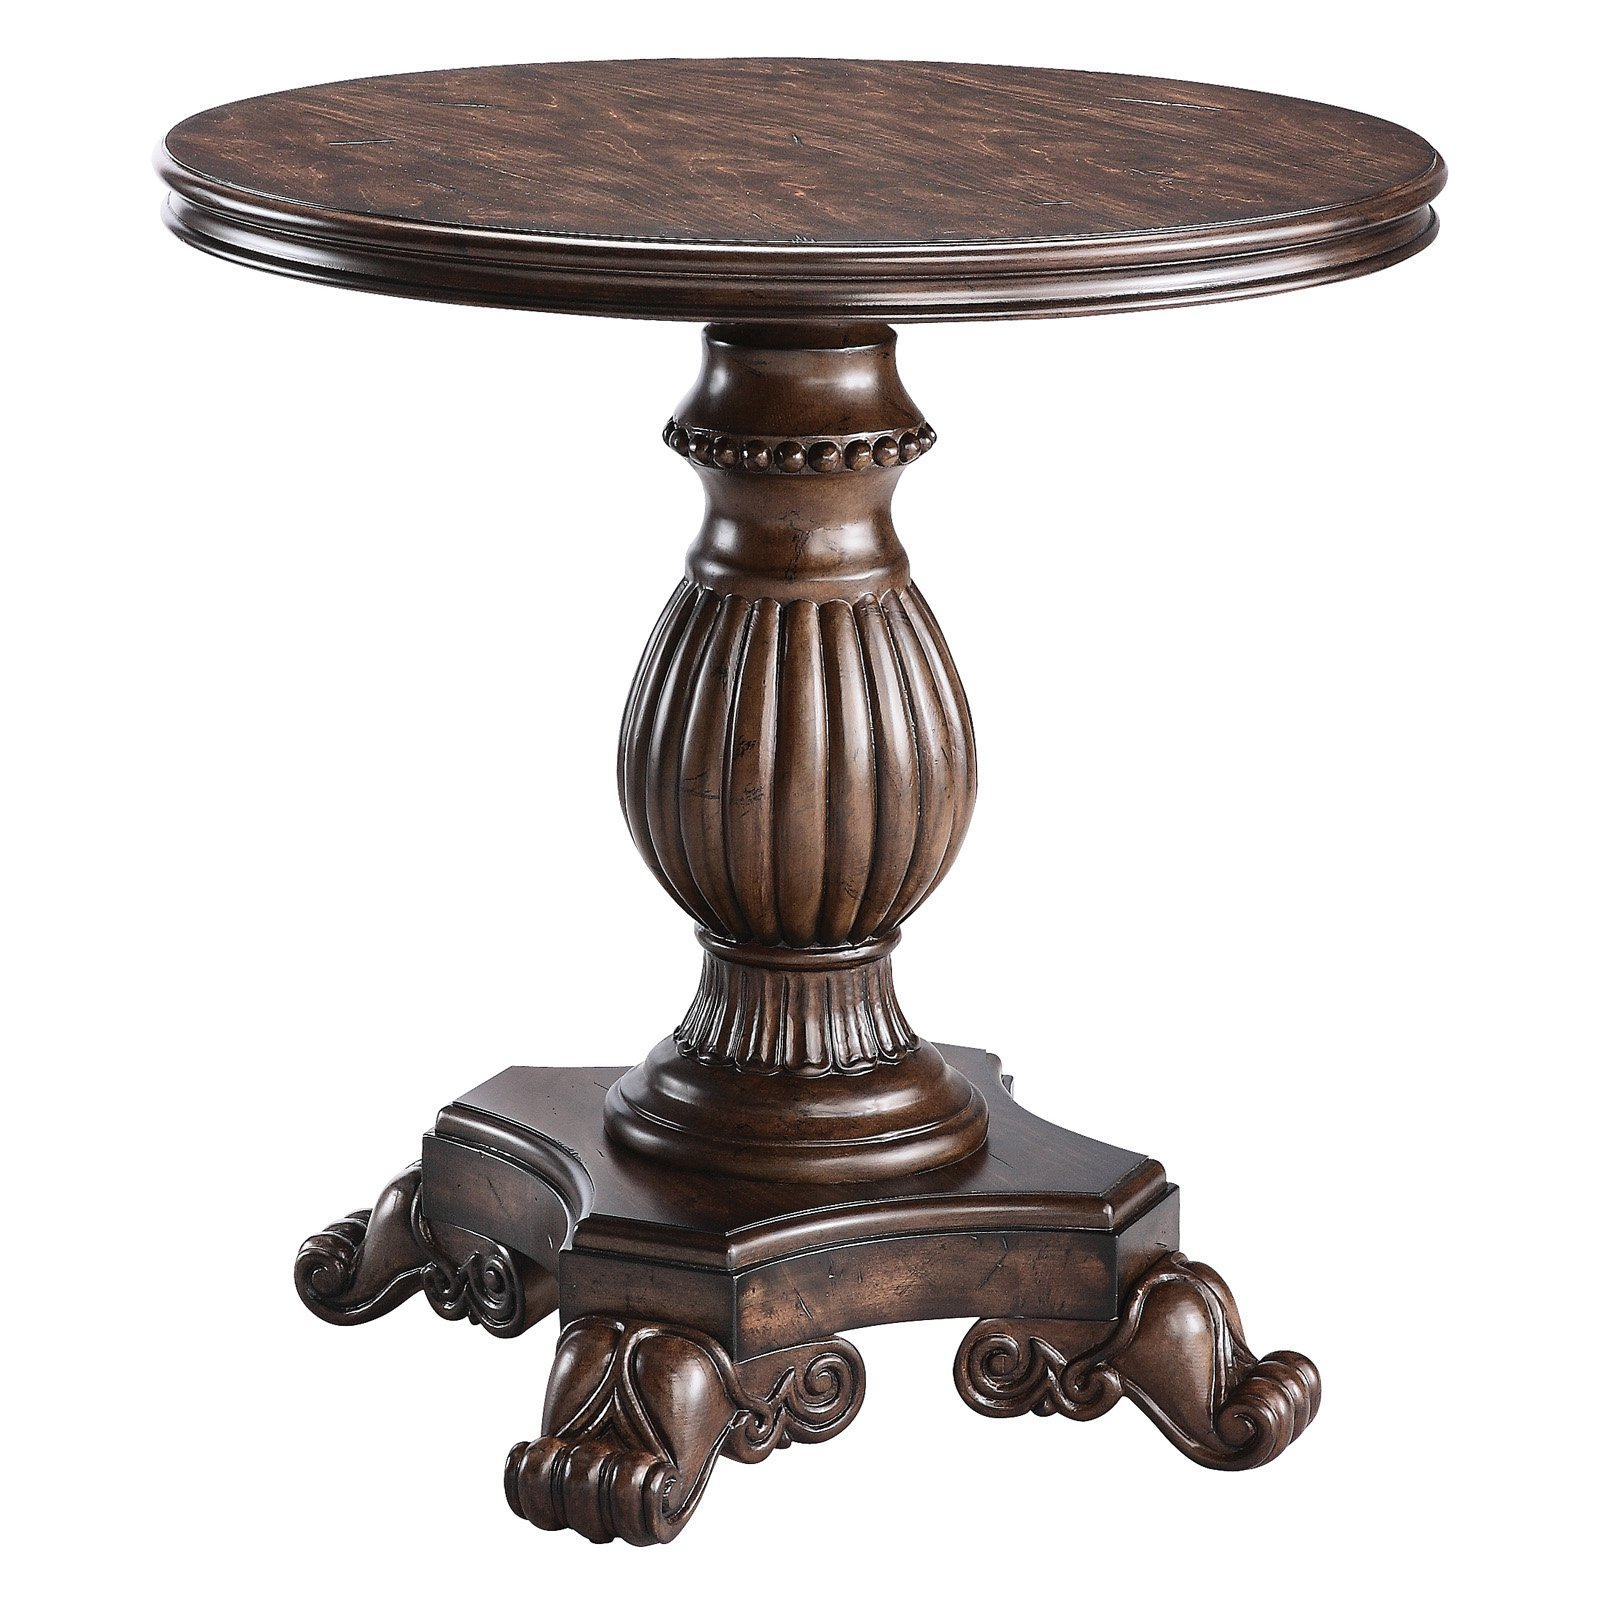 stein world round pedestal reclaimed table dark end half moon accent small dining room furniture sets garden colorful lamps side annie sloan provence target bouncer kidney shaped